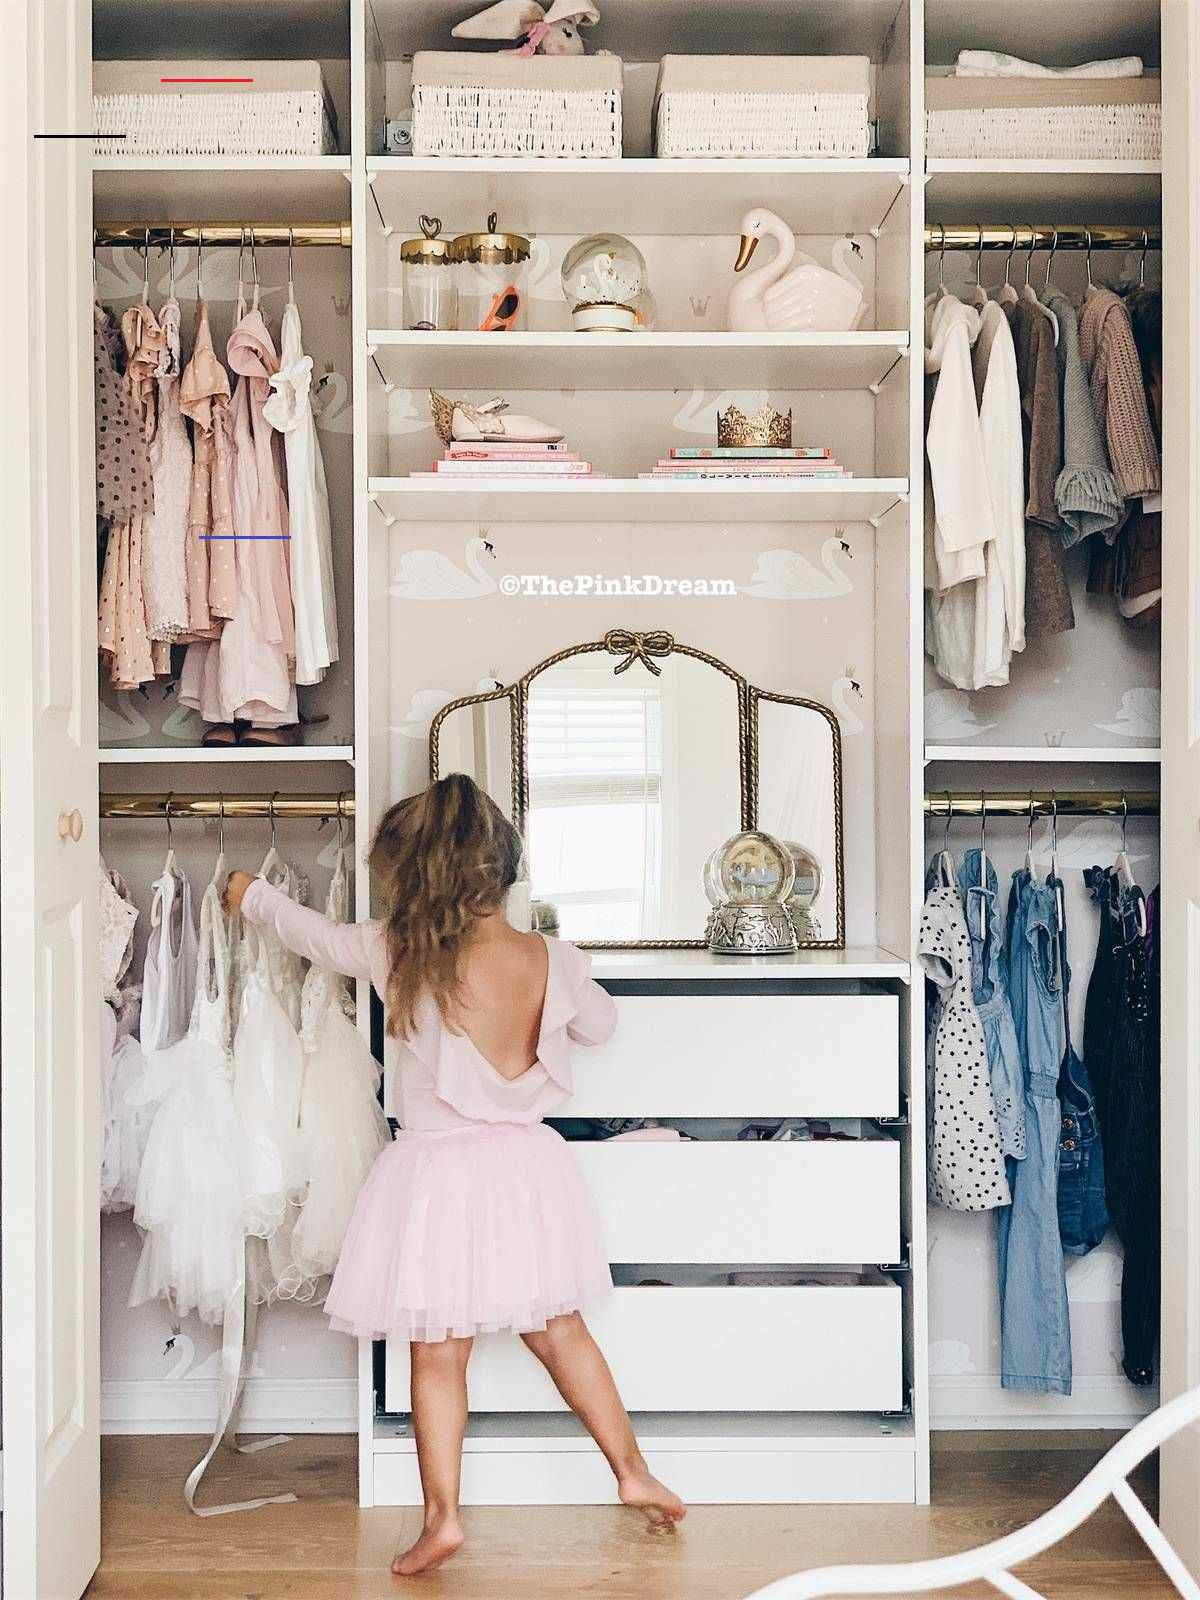 Kleiderschrank Jugendzimmer Ikea Ikea Pax Hack: How To Customize A Small Closet With The Pax System - The Pink Dream - #girlsbedr… | Kleiderschrank Jugendzimmer, Kinder Kleiderschrank, Baby Schrank